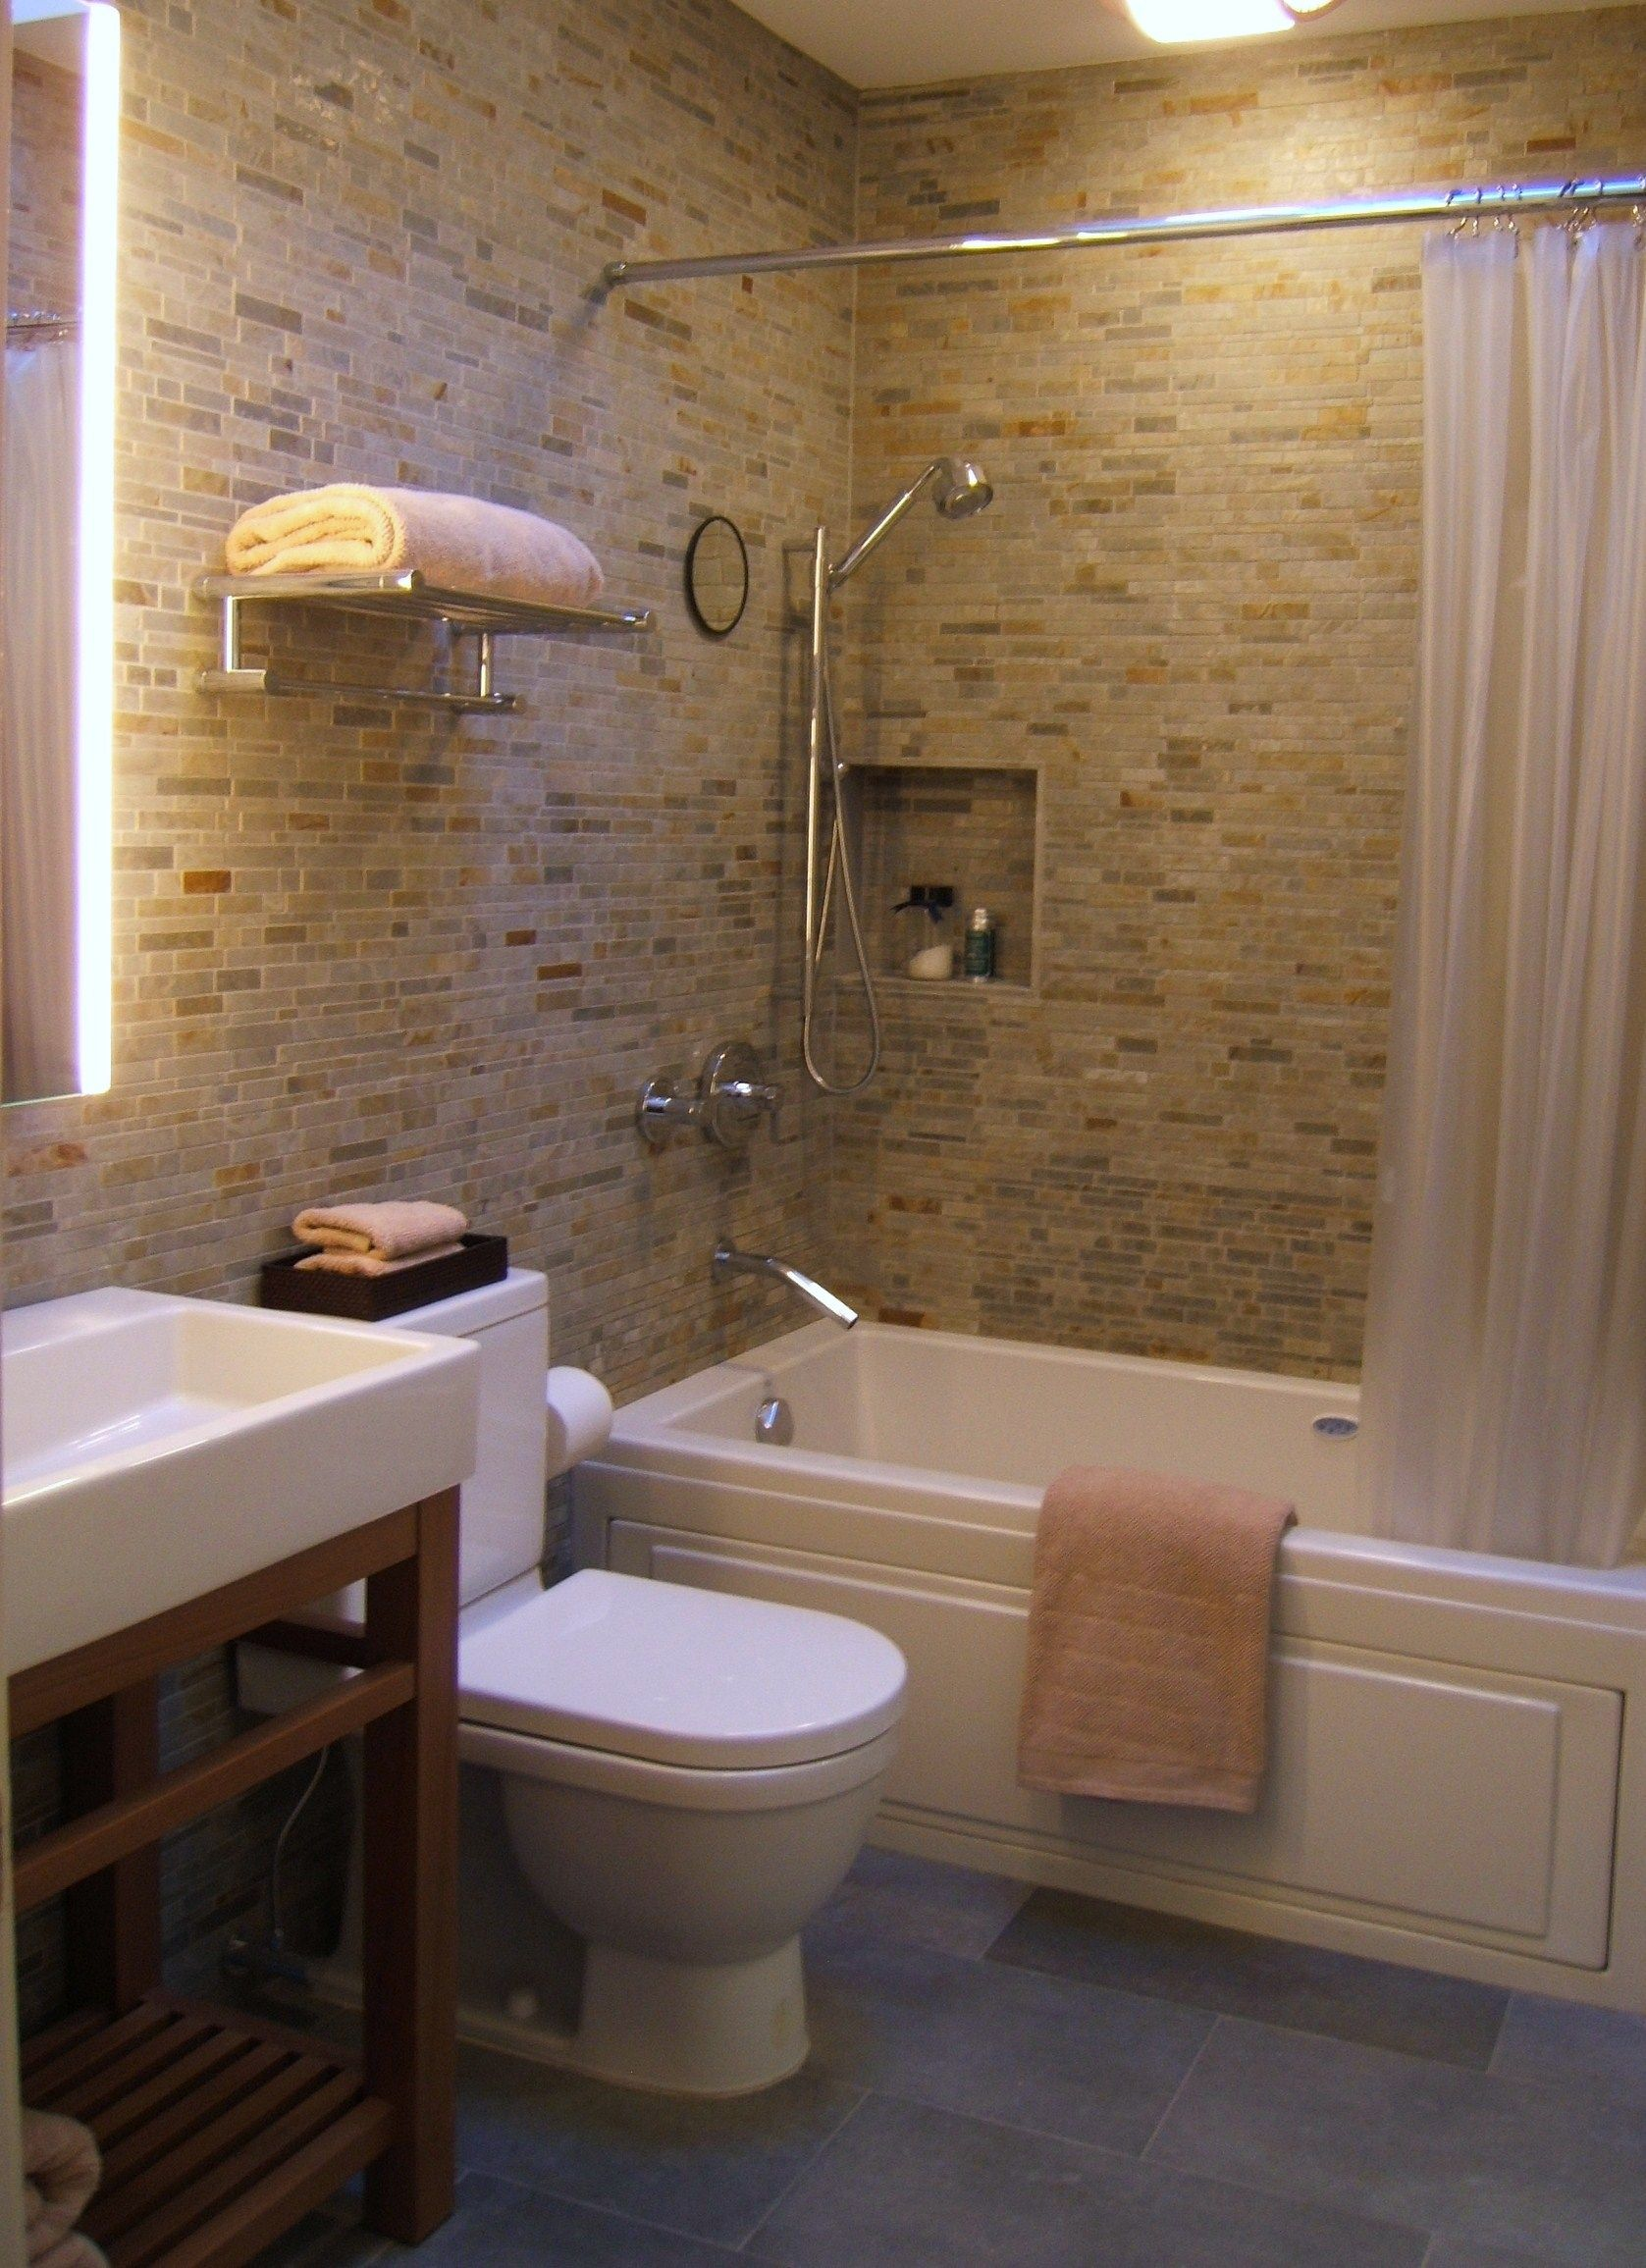 A Small Bathroom Design Of Small Bathroom Designs South Africa Small Bath